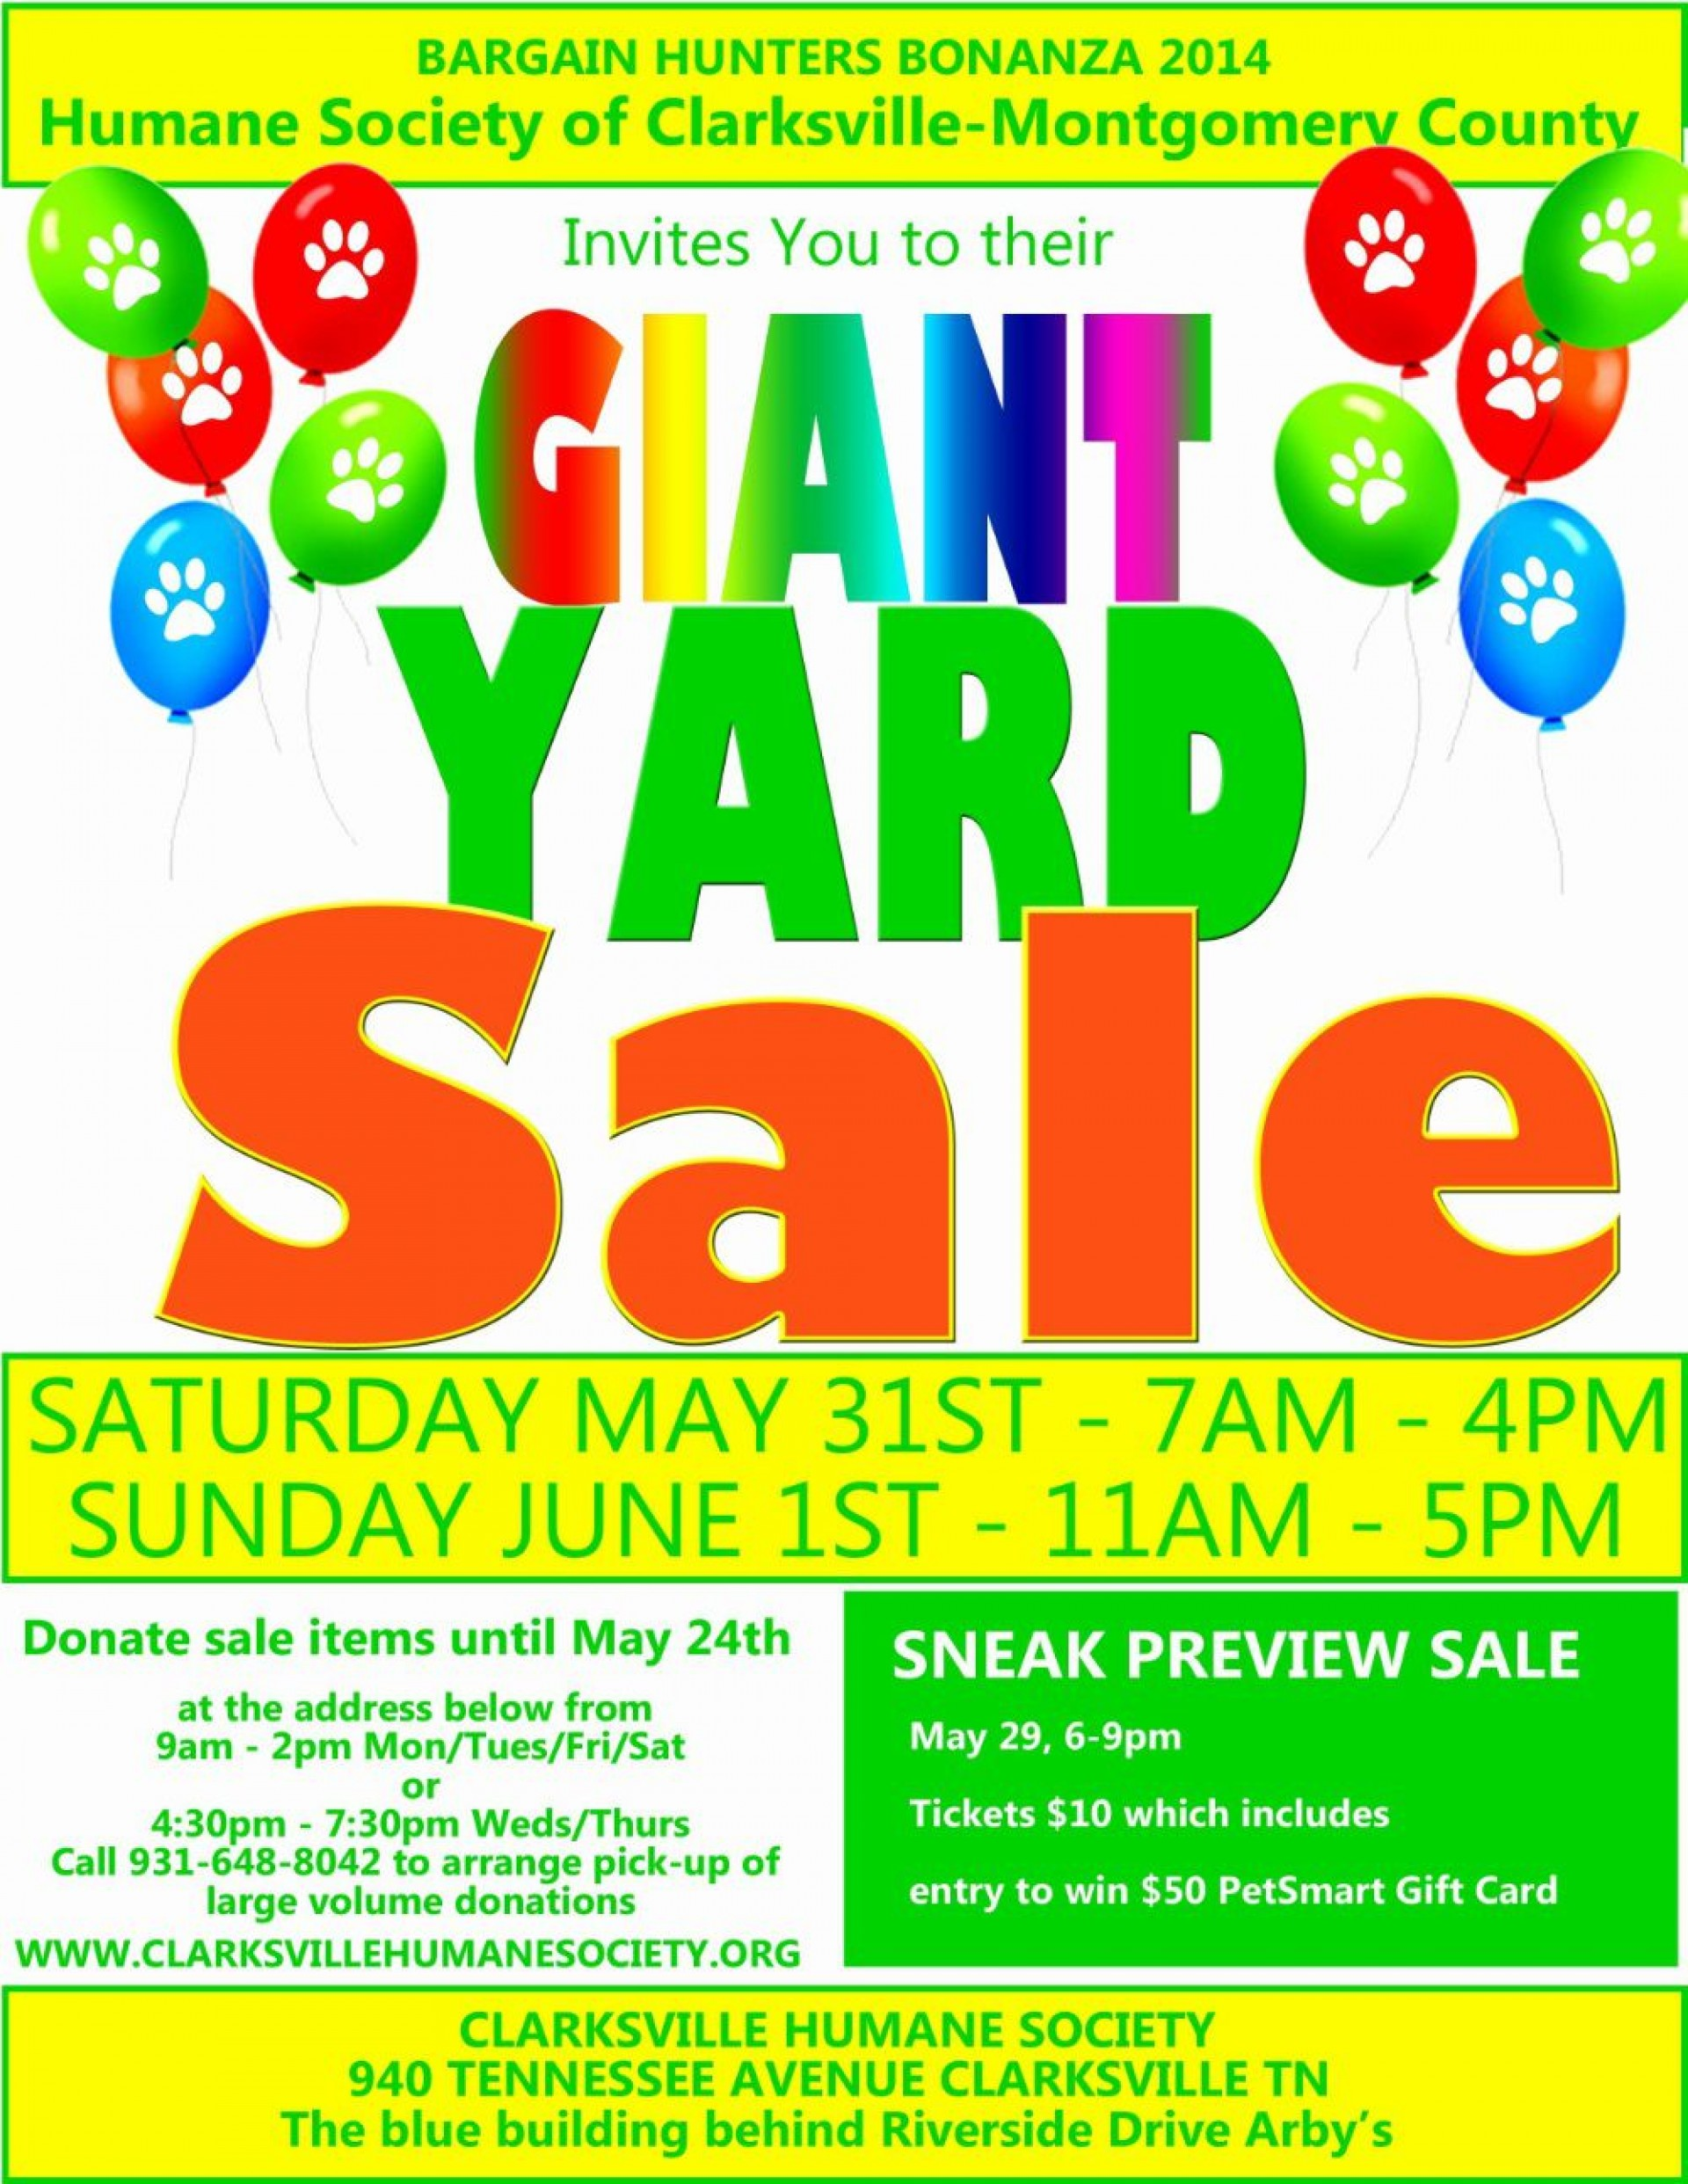 003 Sensational Yard Sale Flyer Template Example  Ad Sample Microsoft Word Garage Free1920